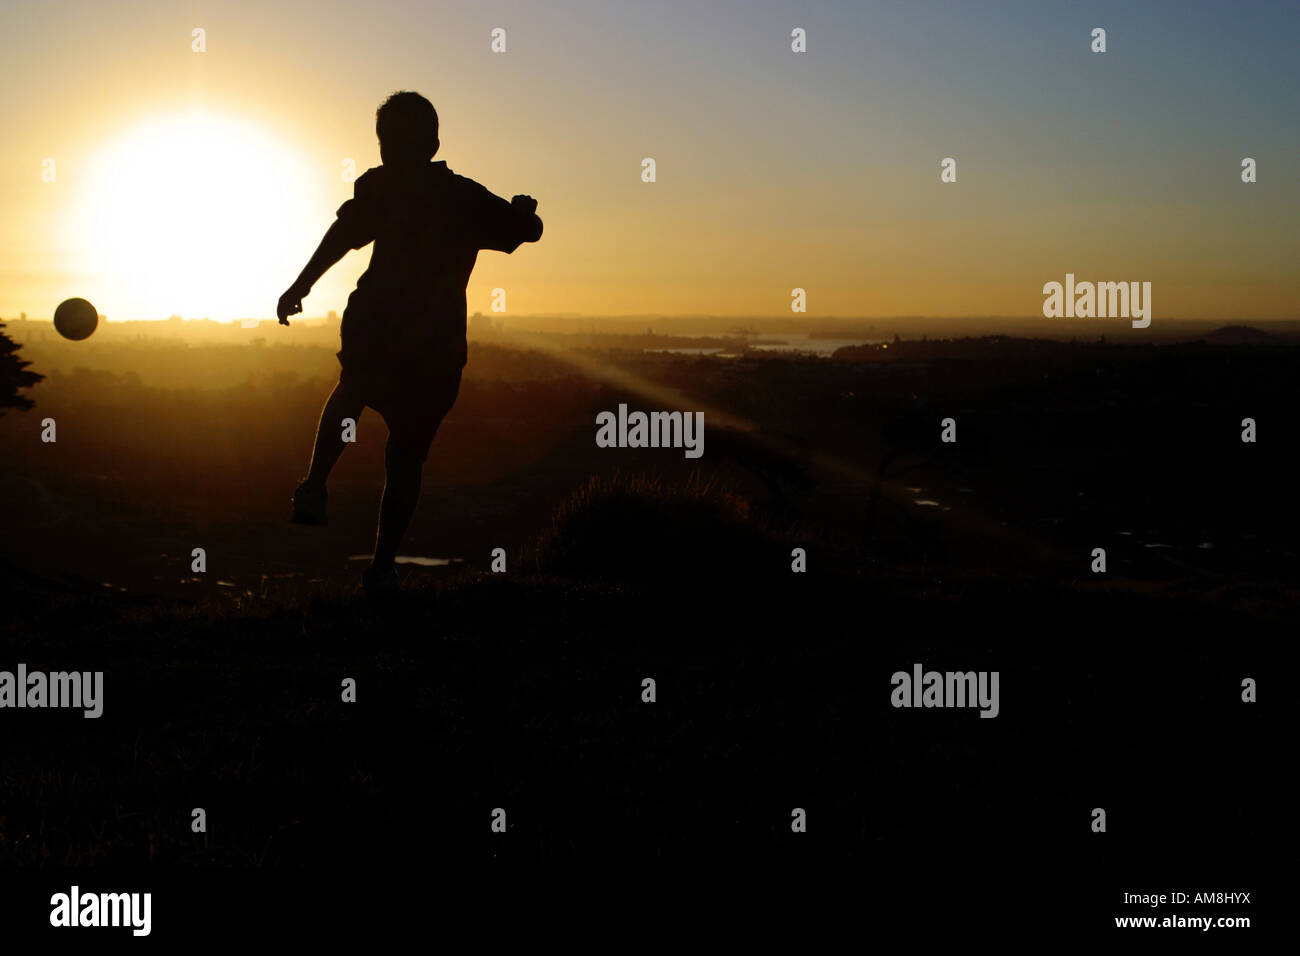 young man kicking a football into the sunset - Stock Image